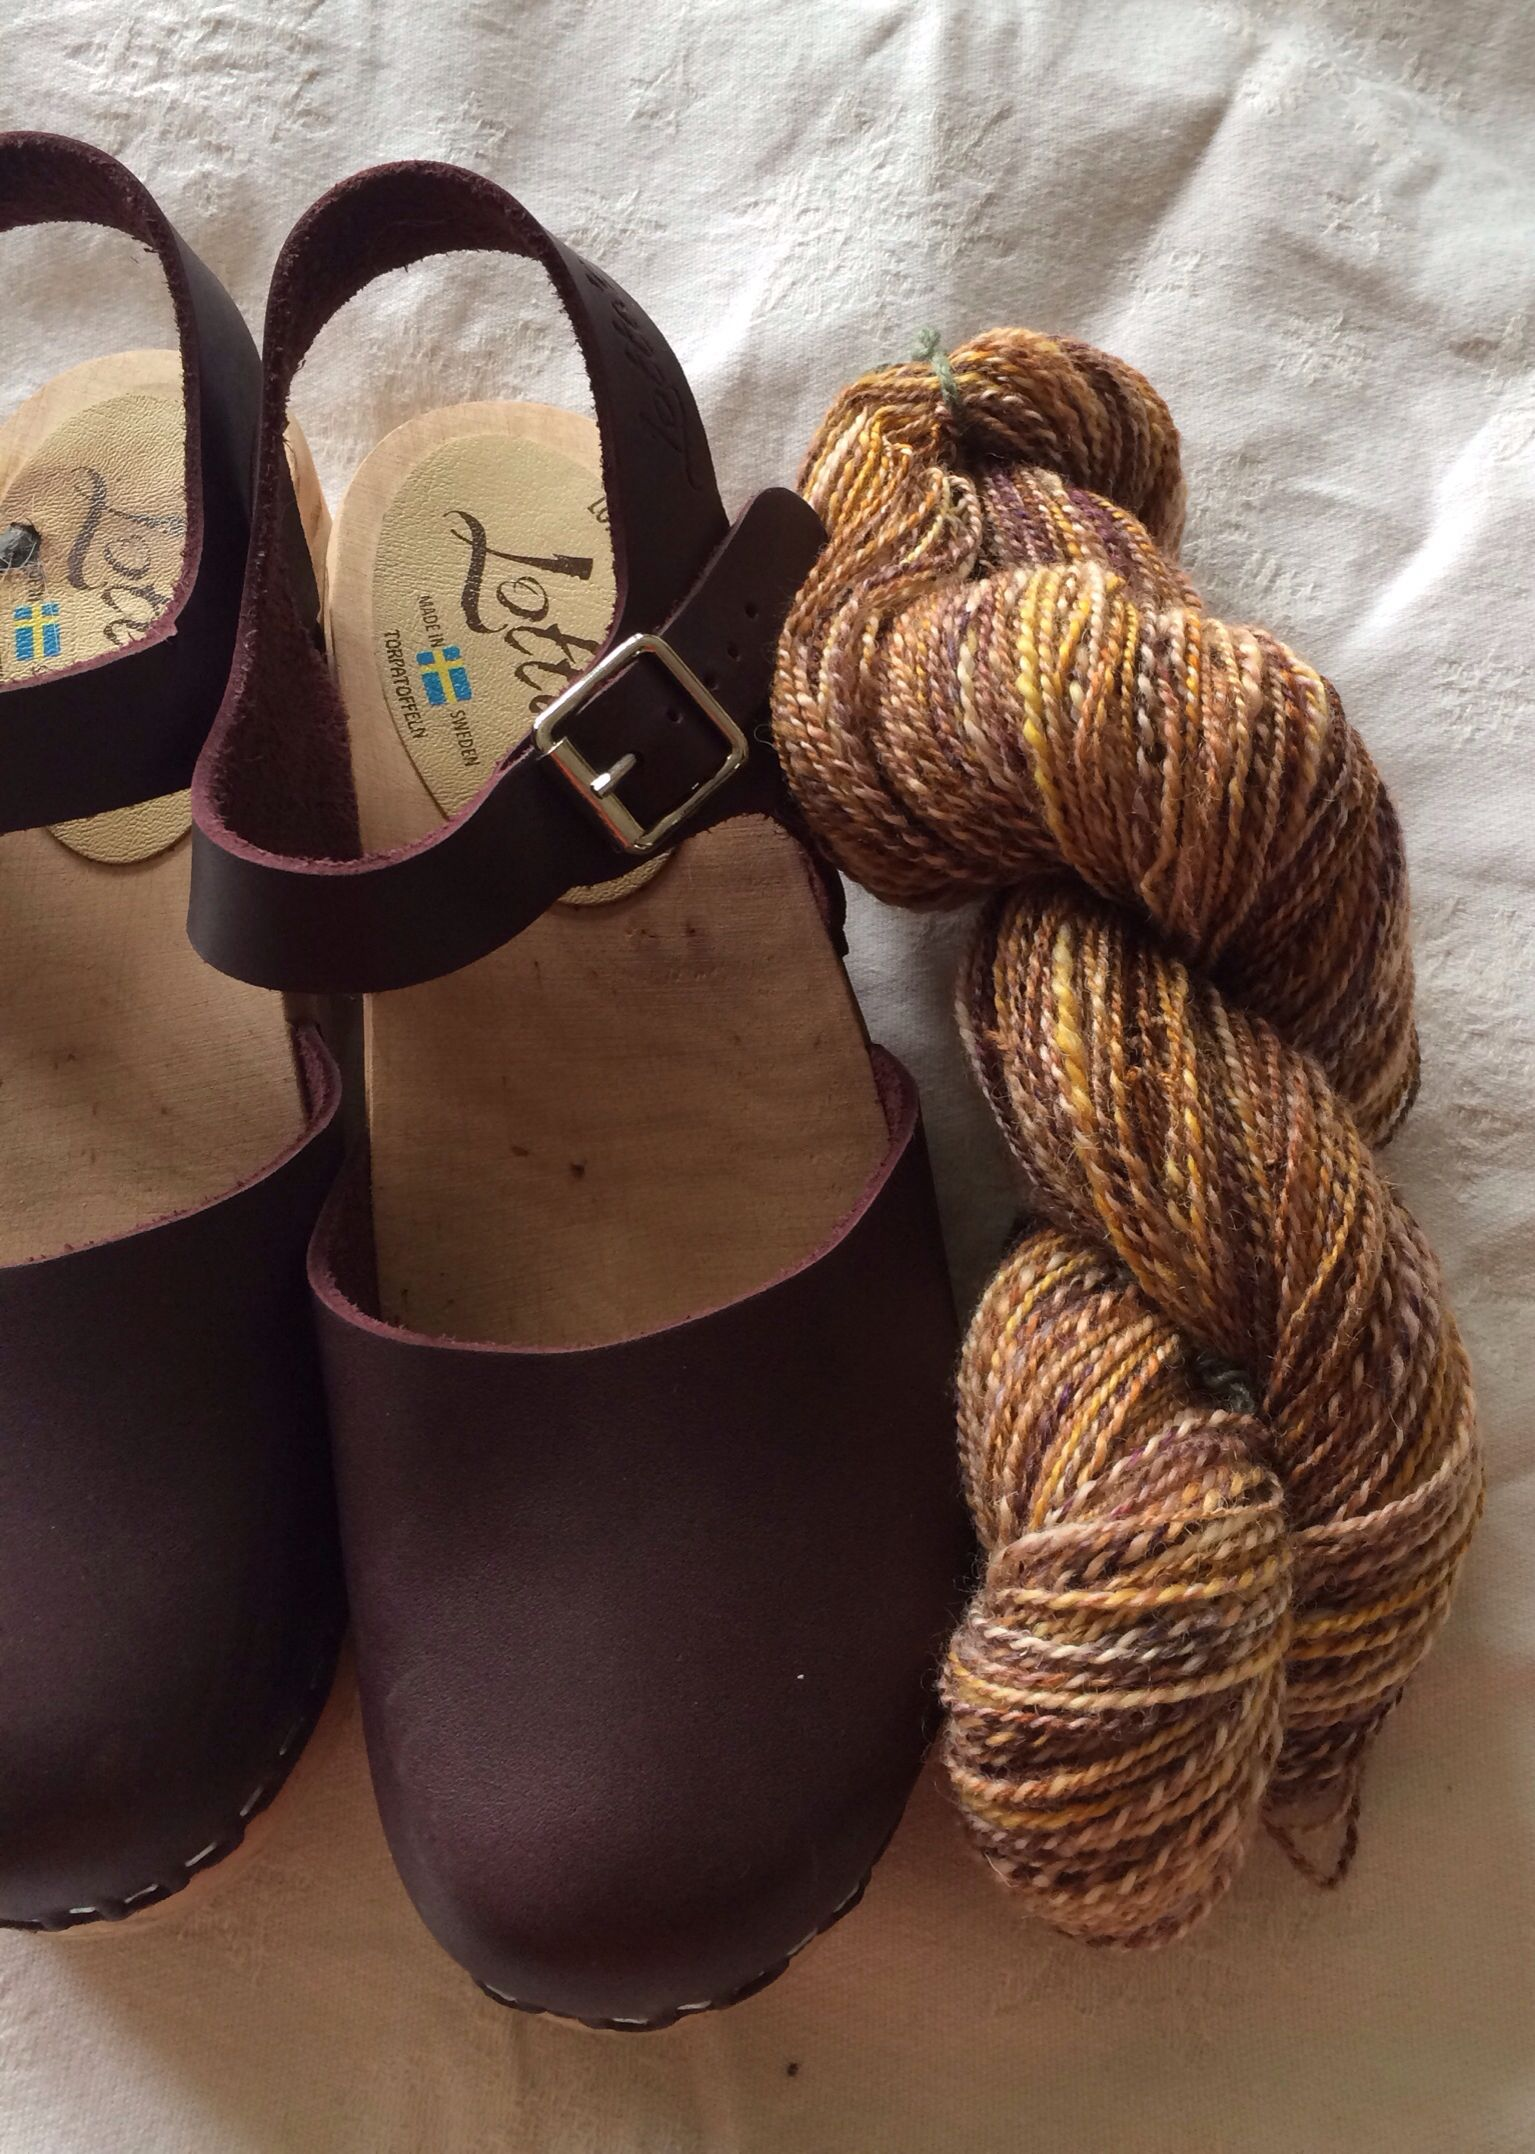 My hand spun.  Hoping to make socks to wear with my clogs.